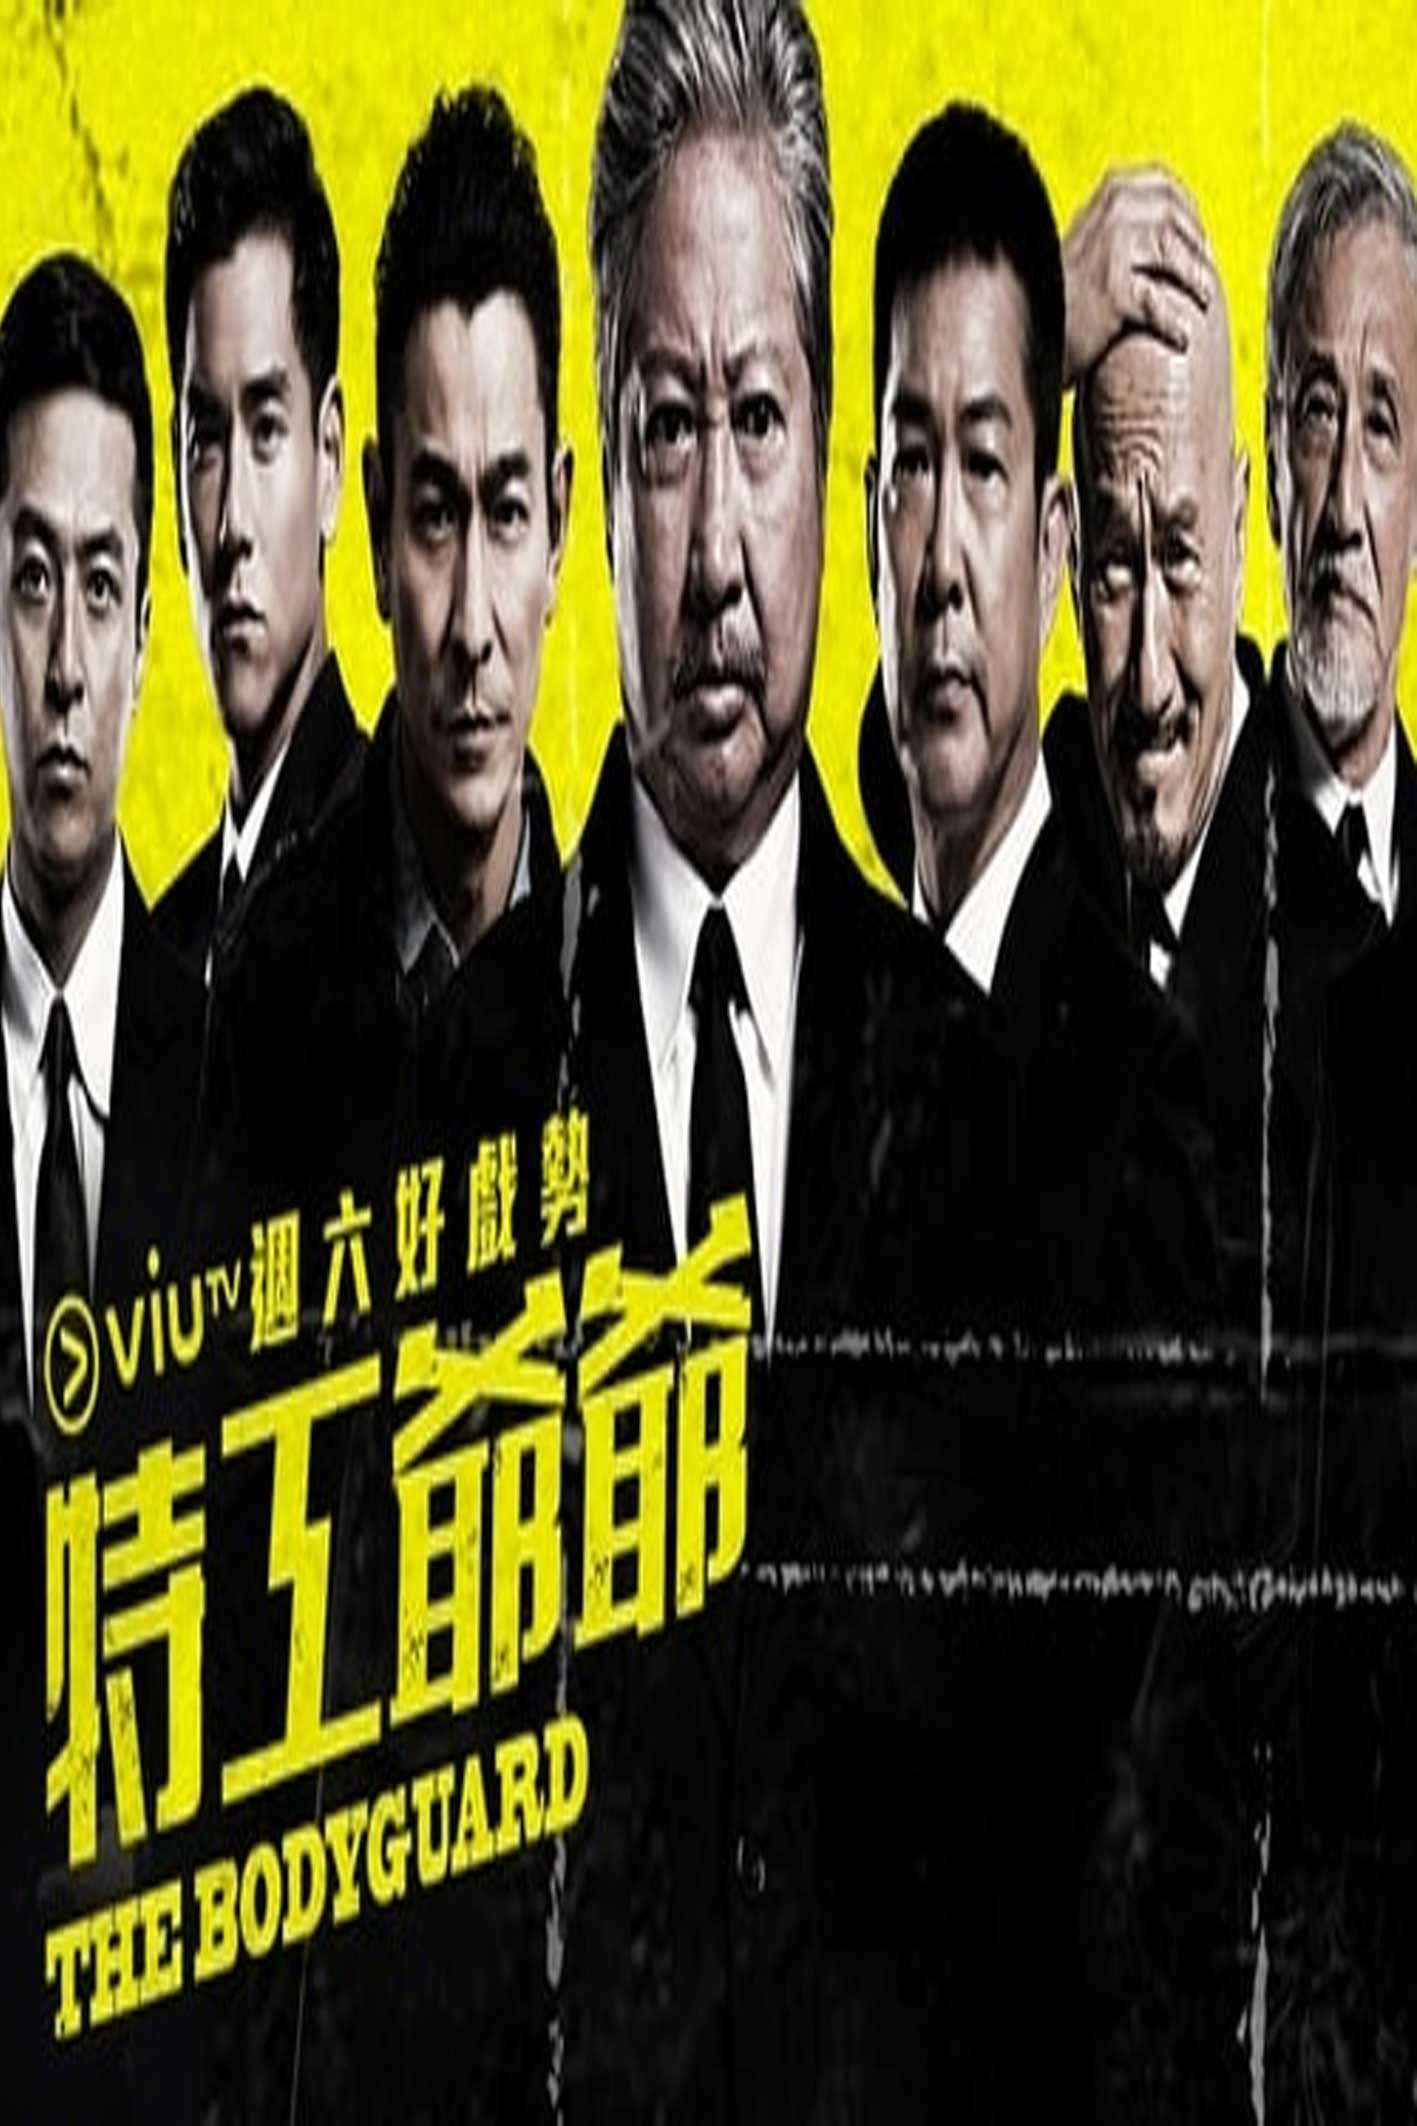 The Bodyguard - 特工爺爺